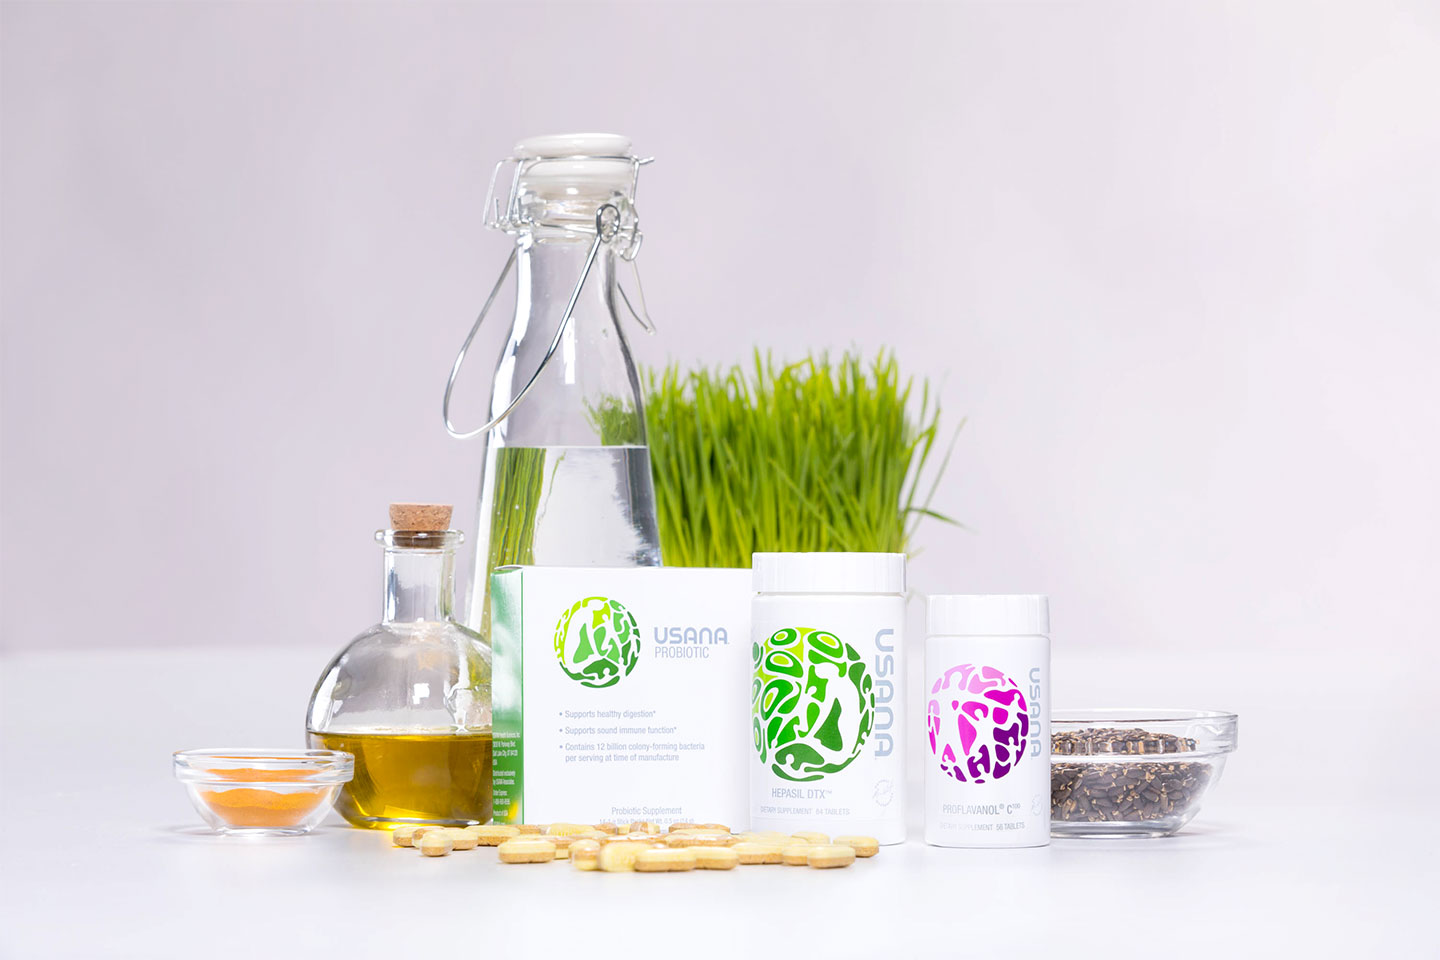 Usana High Quality Science Based Nutrition And Skin Care